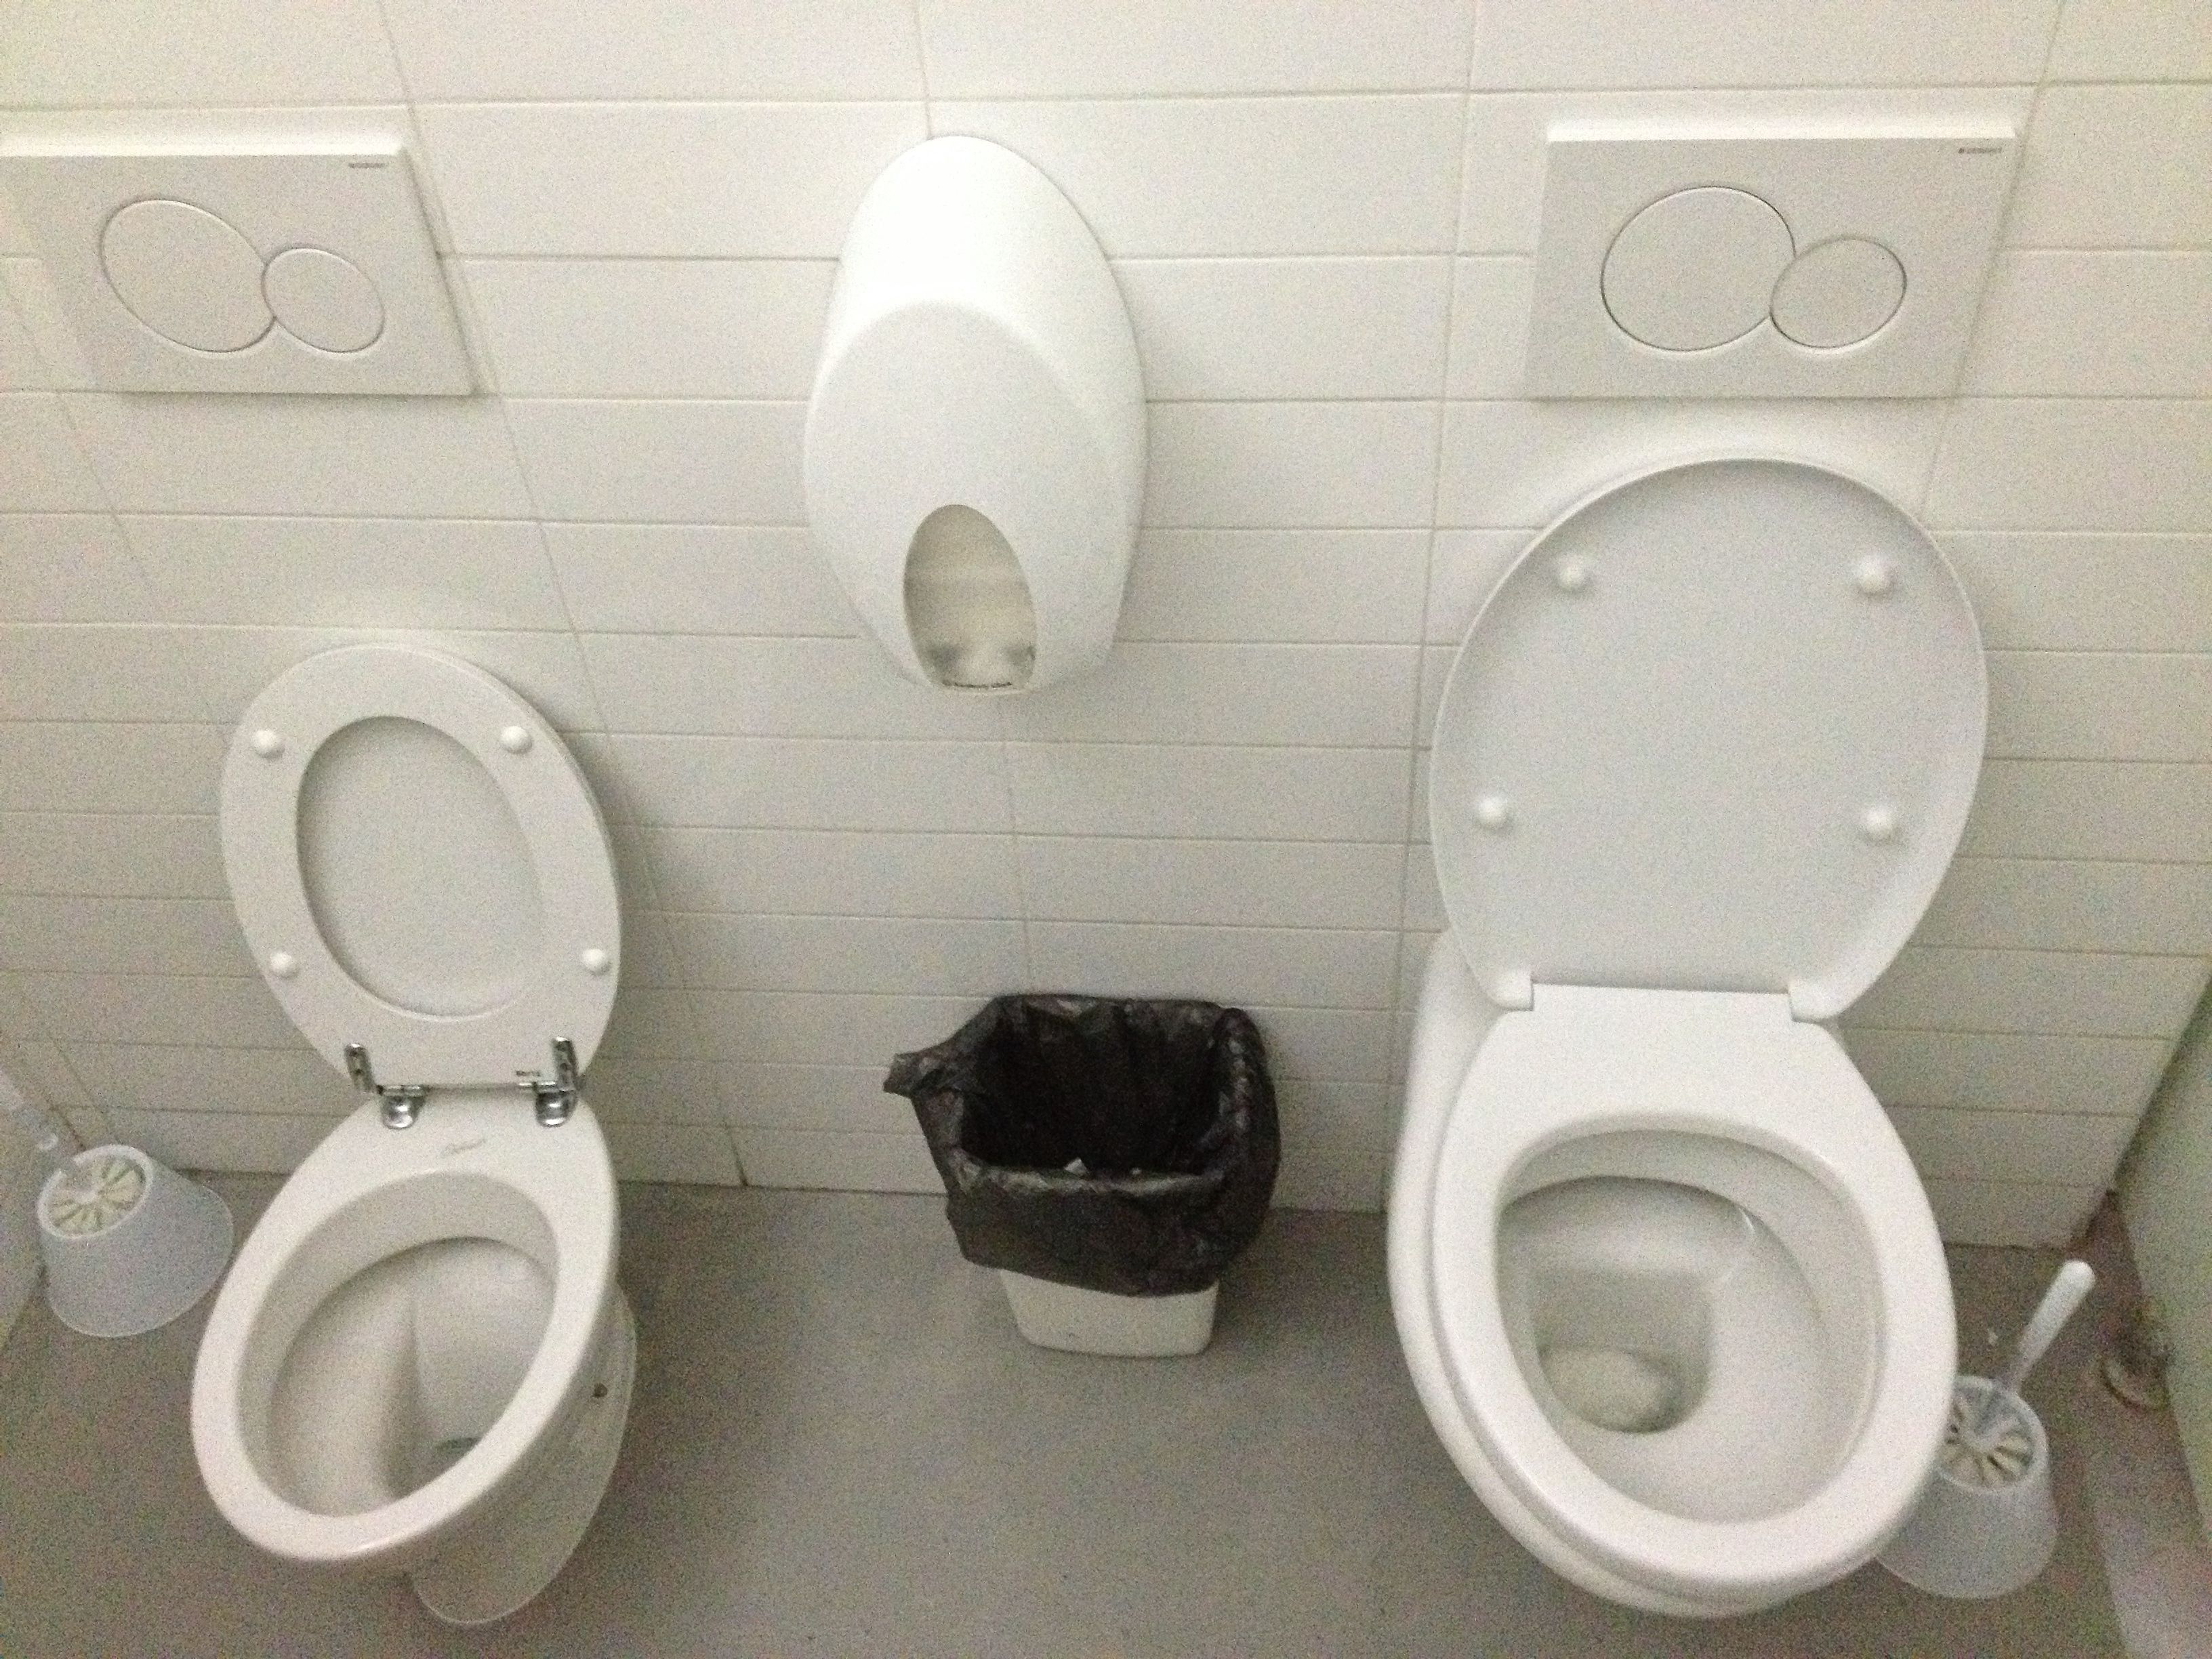 Tandem toilets - two toilets in one cubicle